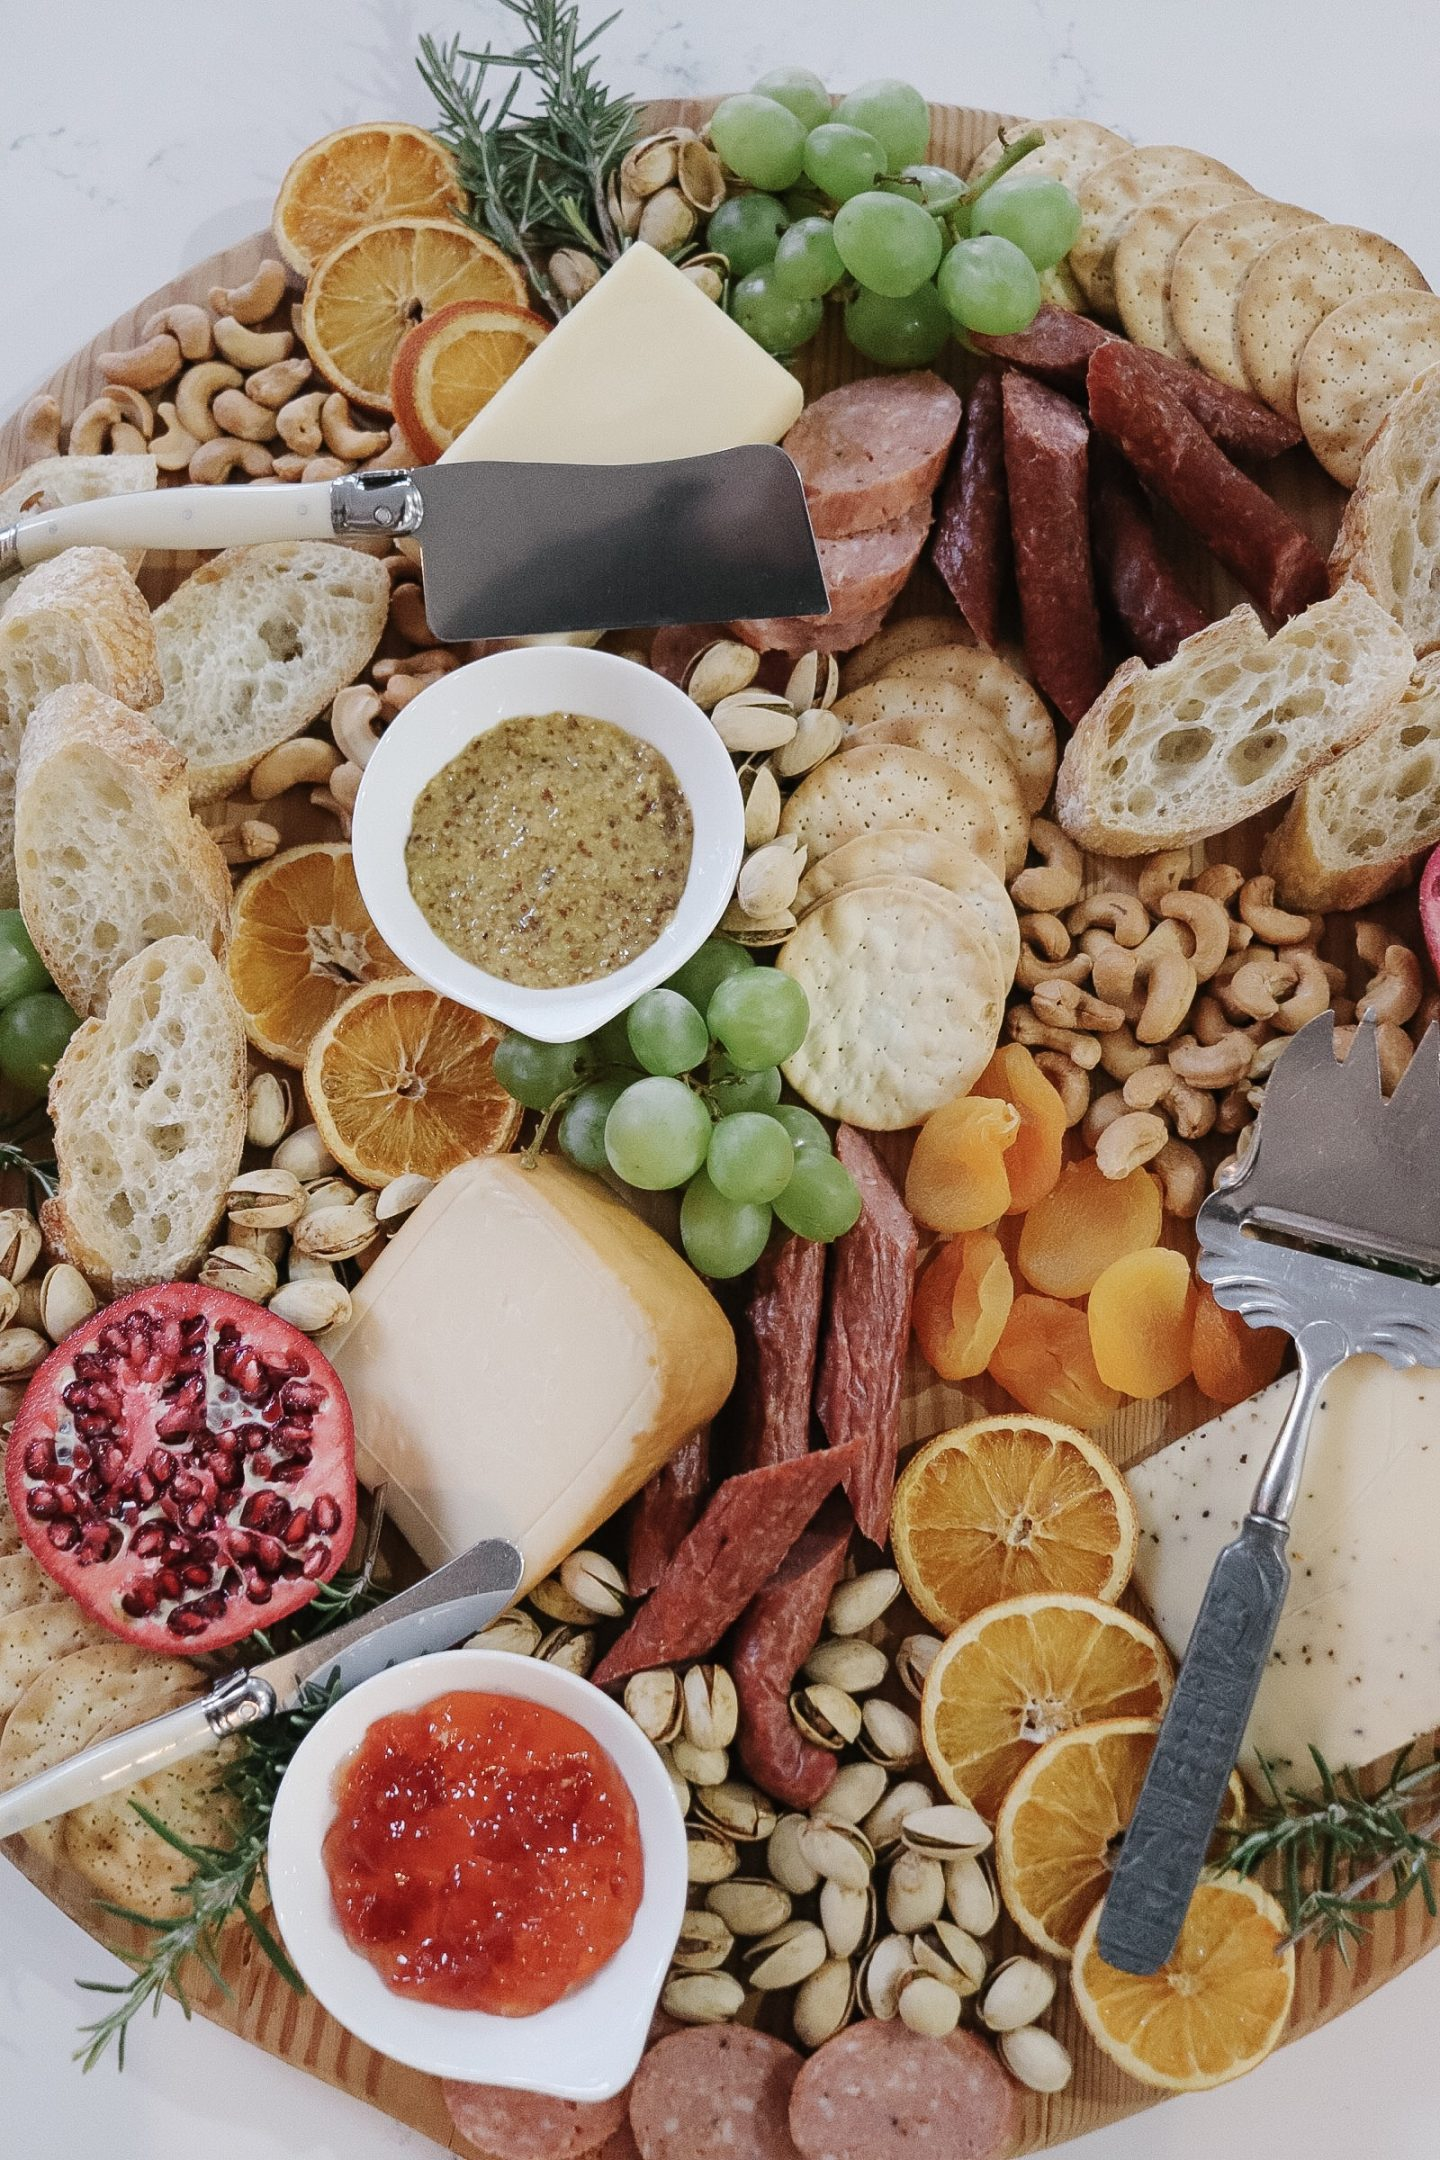 How to create a Simple Holiday Charcuterie